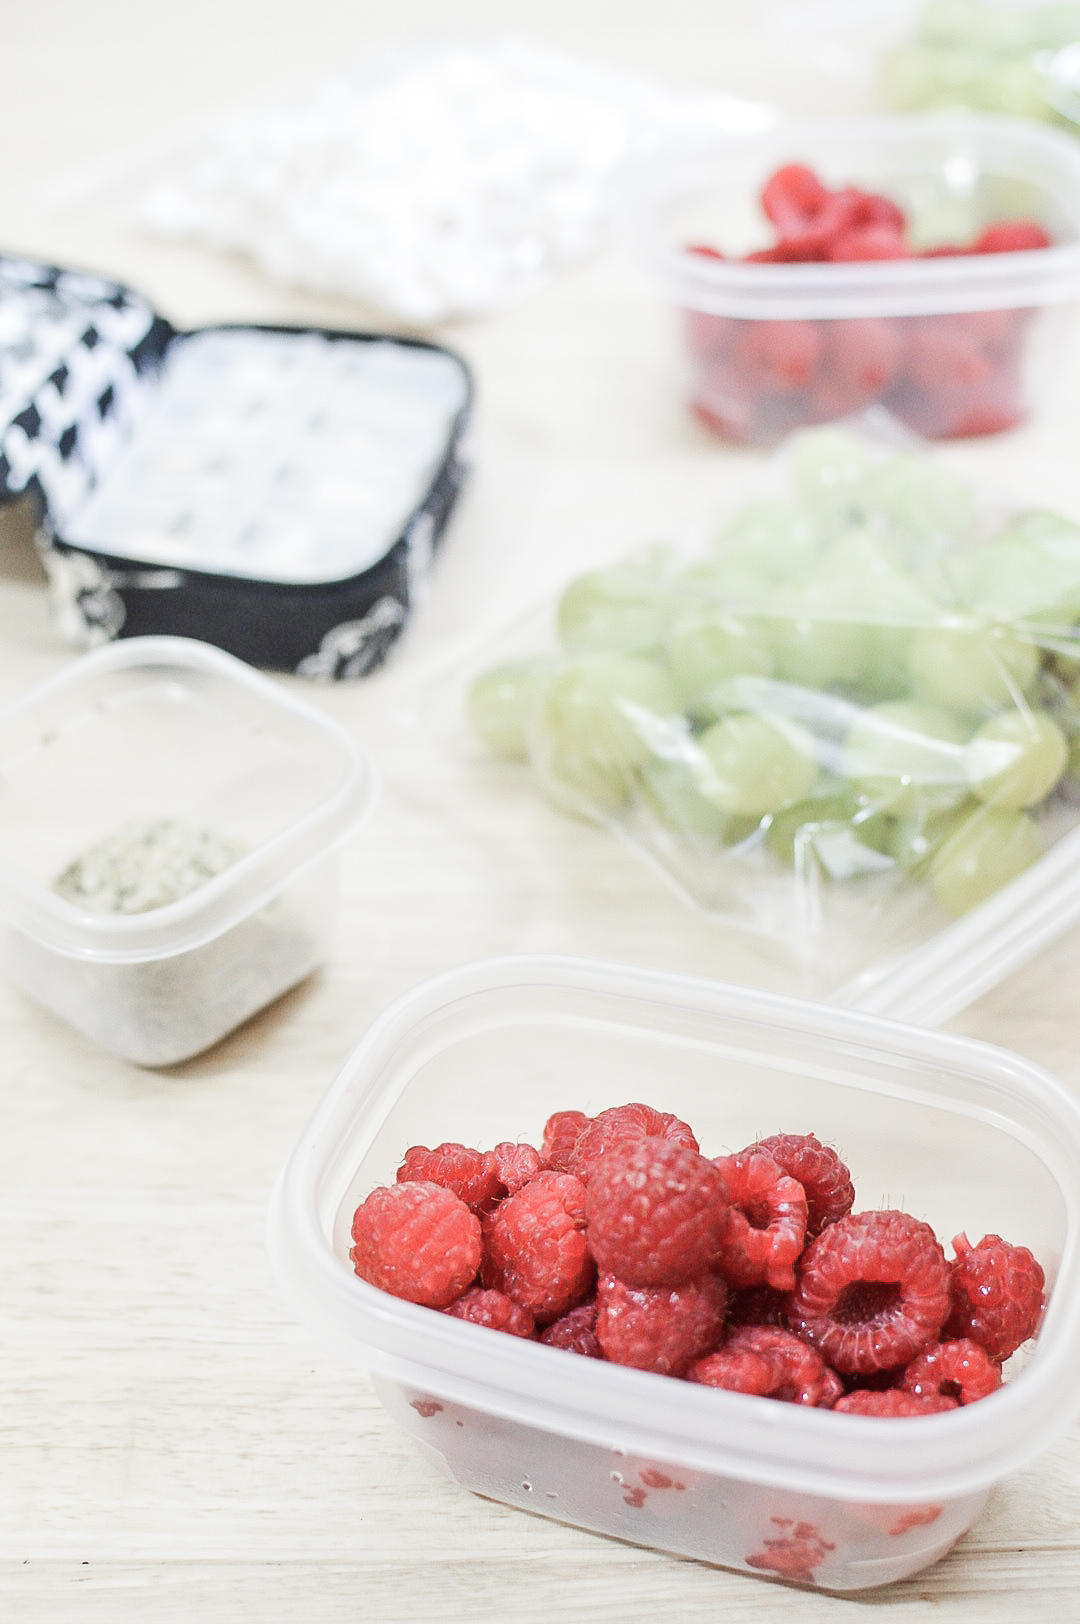 5 Things You're Not Meal Prepping, But Should